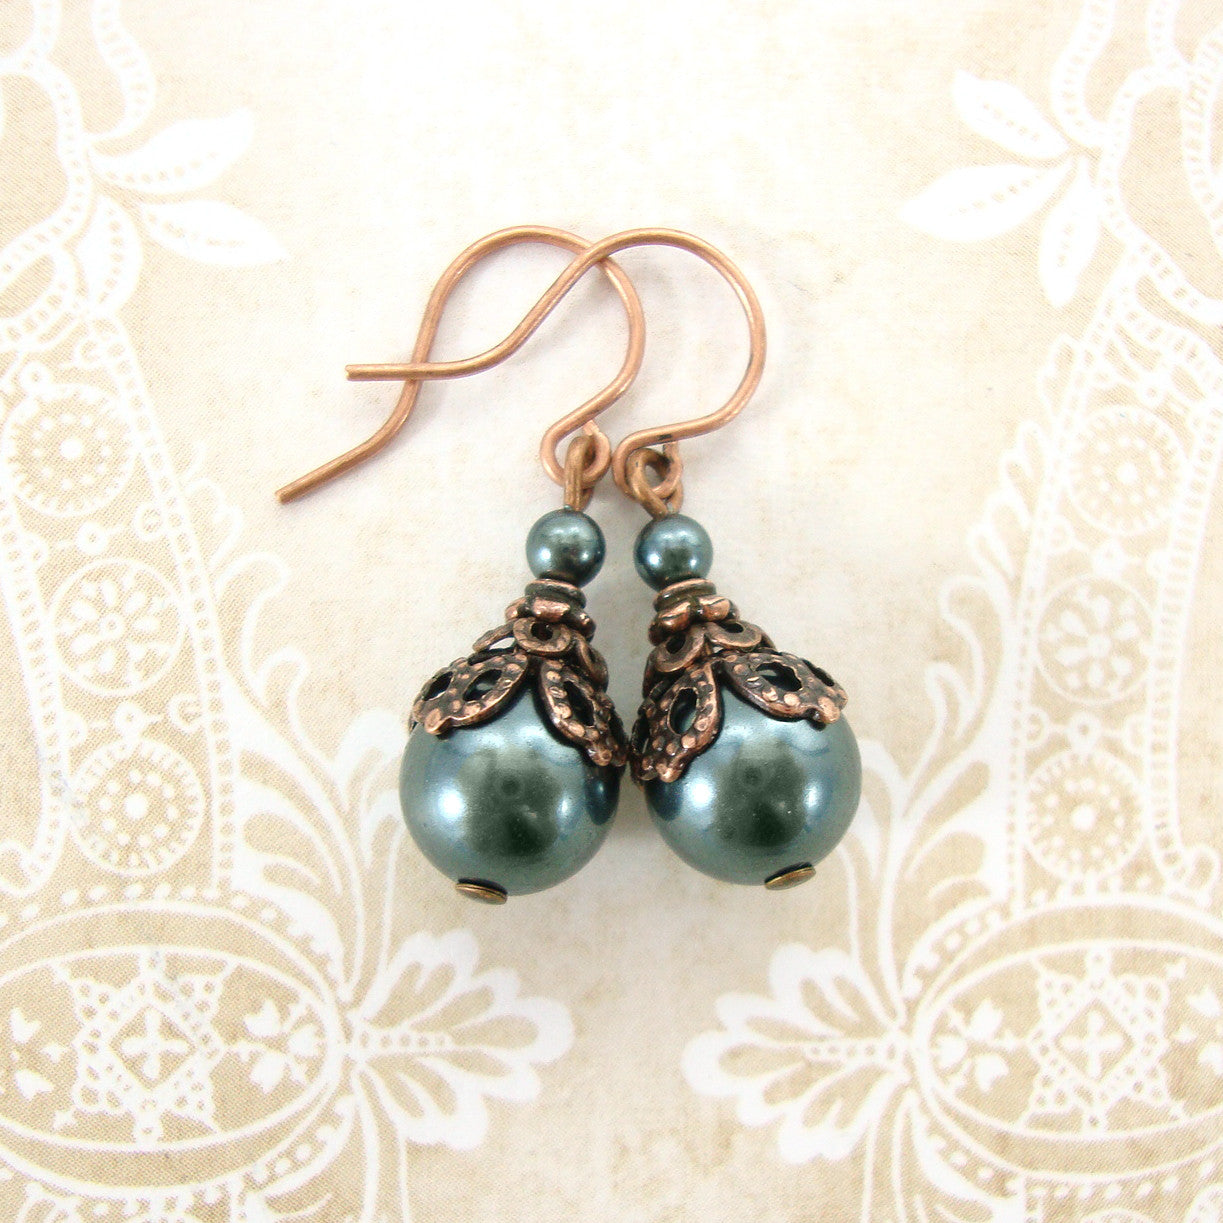 Iridescent green pearl earrings